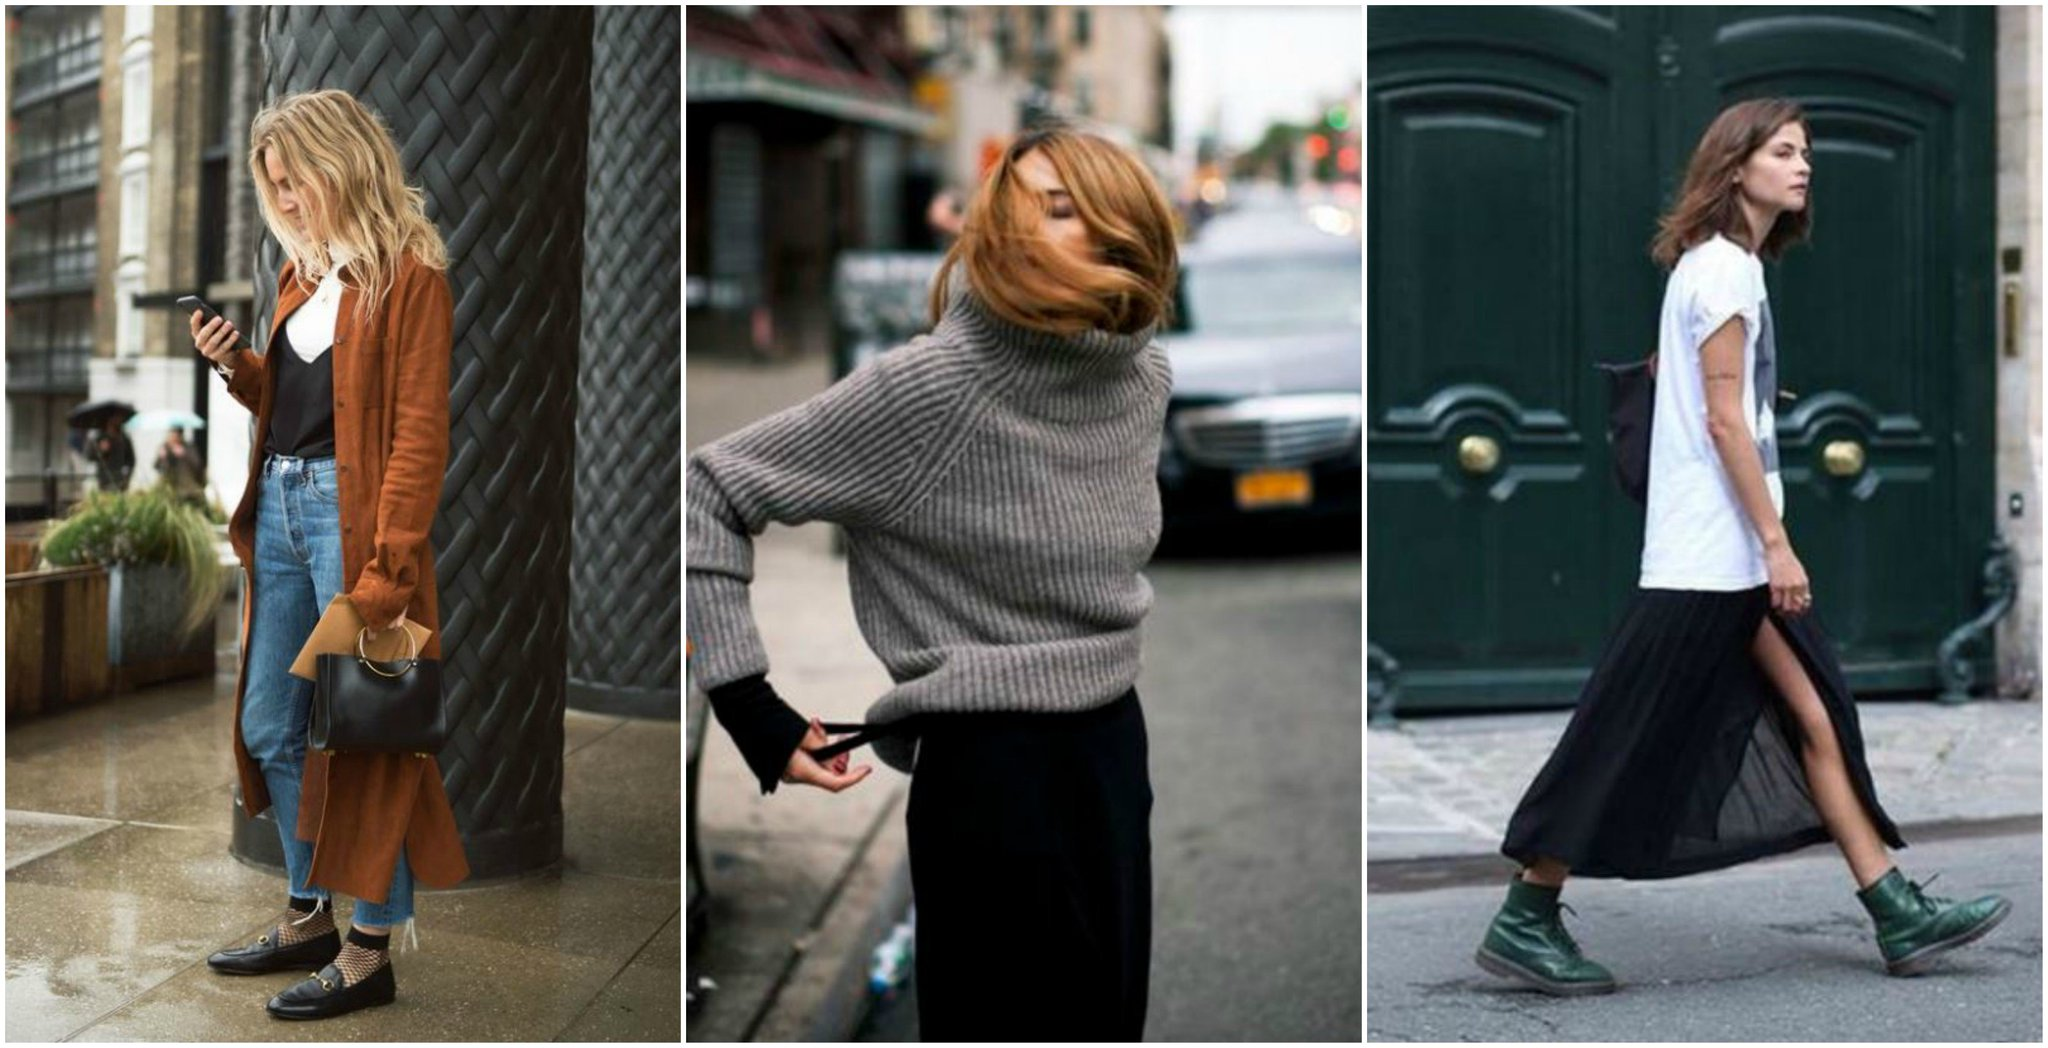 Behold the hottest fashion trends of Autumn 2016 https://t.co/F5N2kIeTy8 https://t.co/3F9QLZjHIF